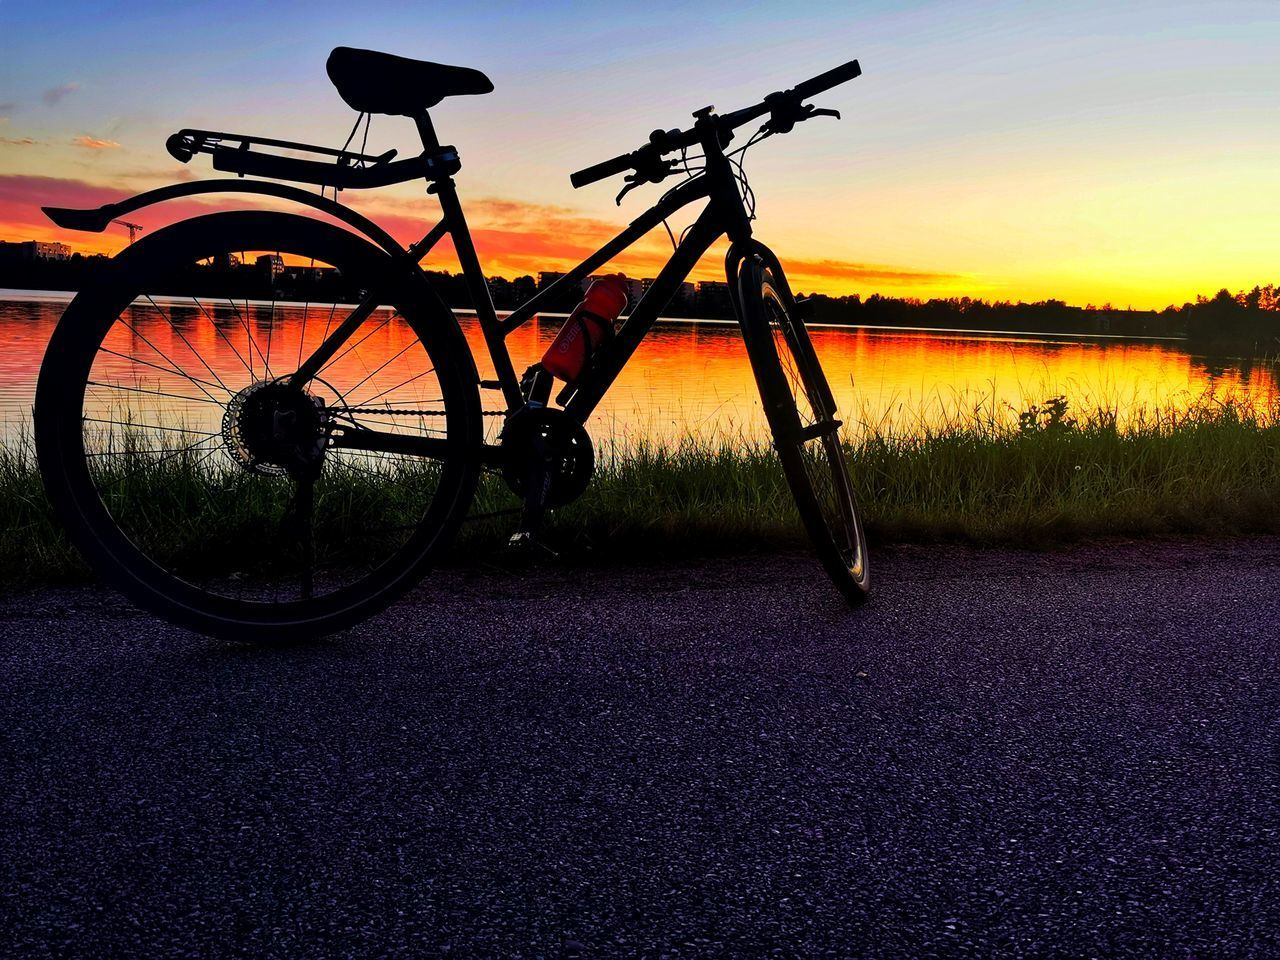 BICYCLE PARKED ON ROAD AGAINST SKY DURING SUNSET